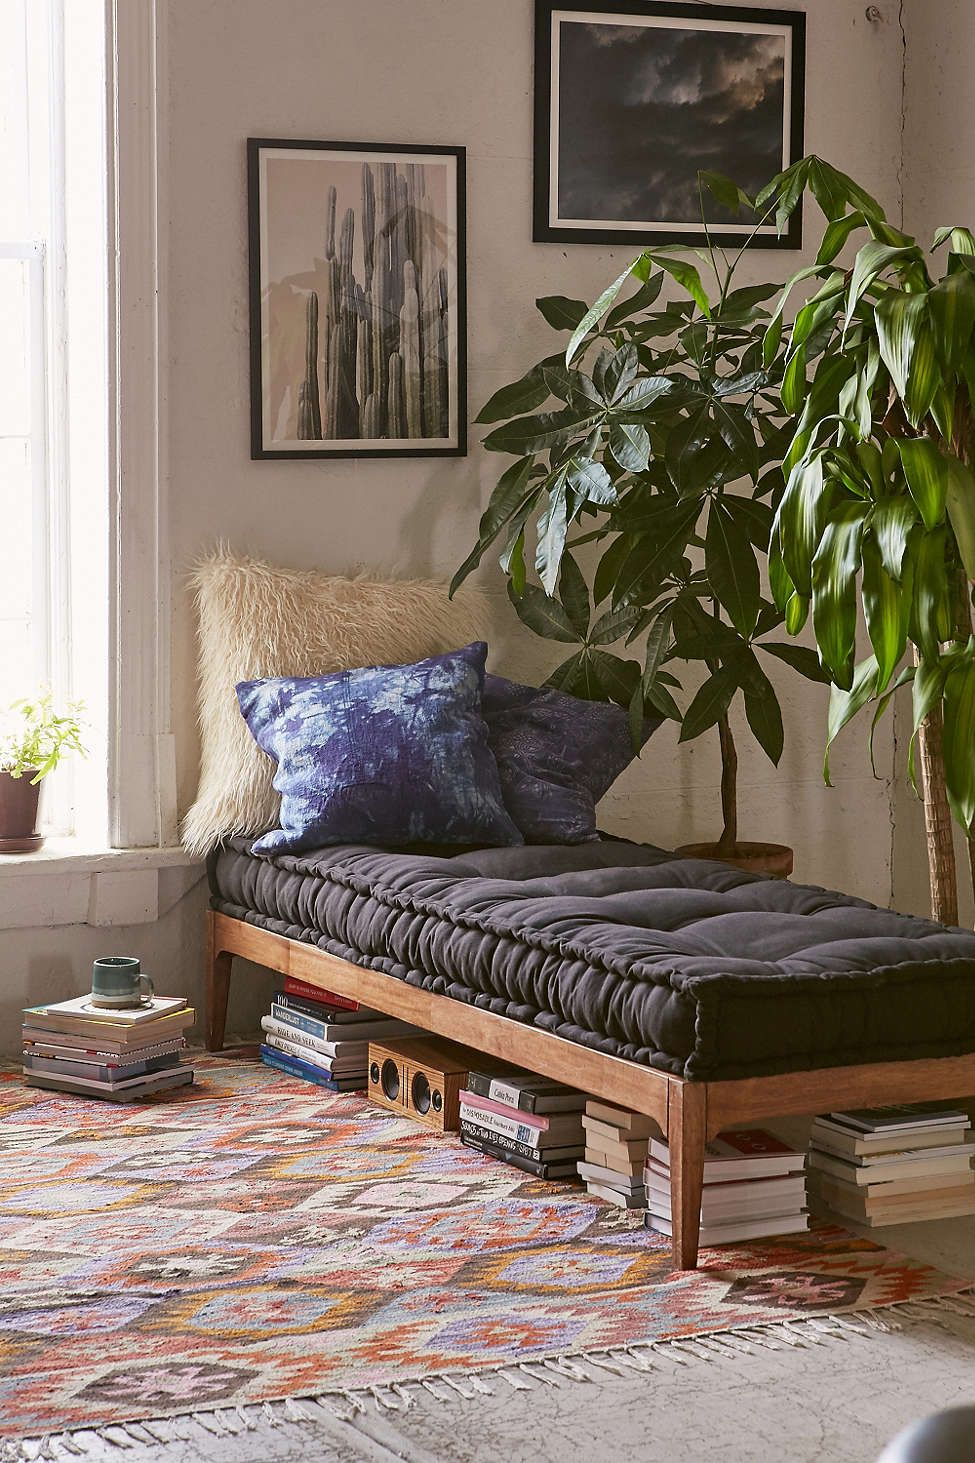 Three Bohemian Daybeds That Will Make You Dream Daily Dream Decor Dream Decor Daybed Home Decor